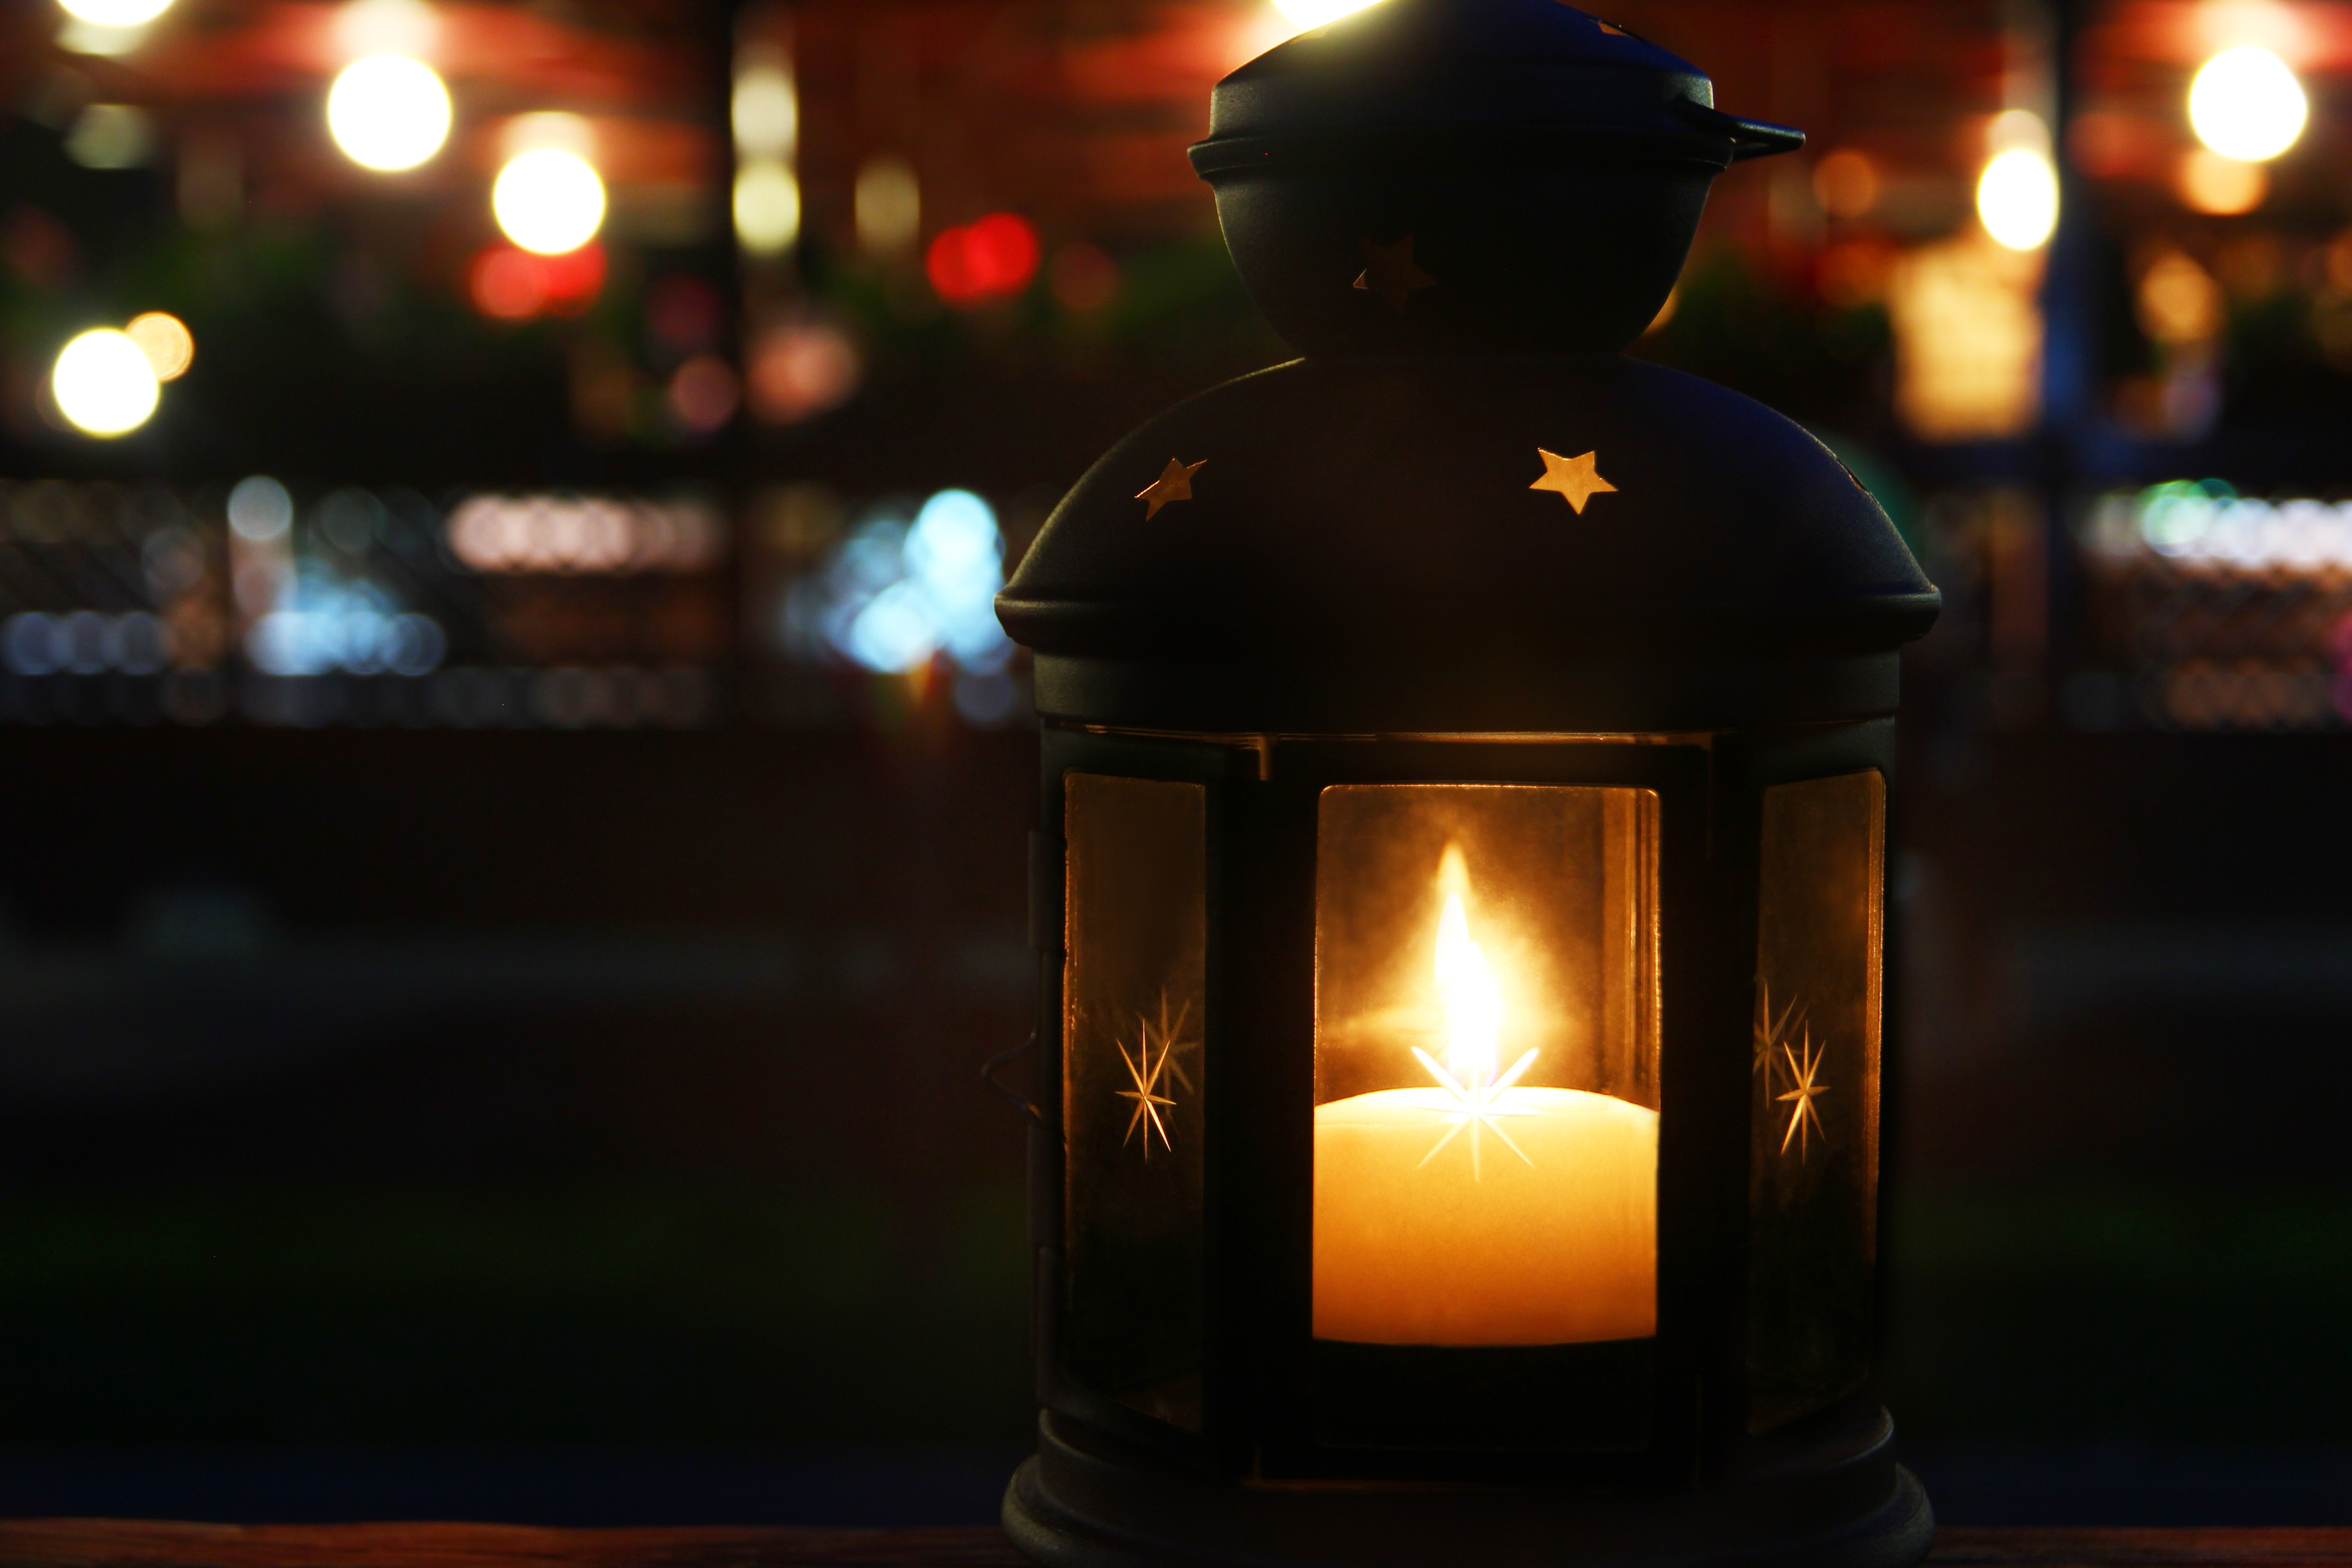 How To Use Outdoor Decorative Candle Lanterns: 5 Steps In Widely Used Outdoor Tea Light Lanterns (View 12 of 20)